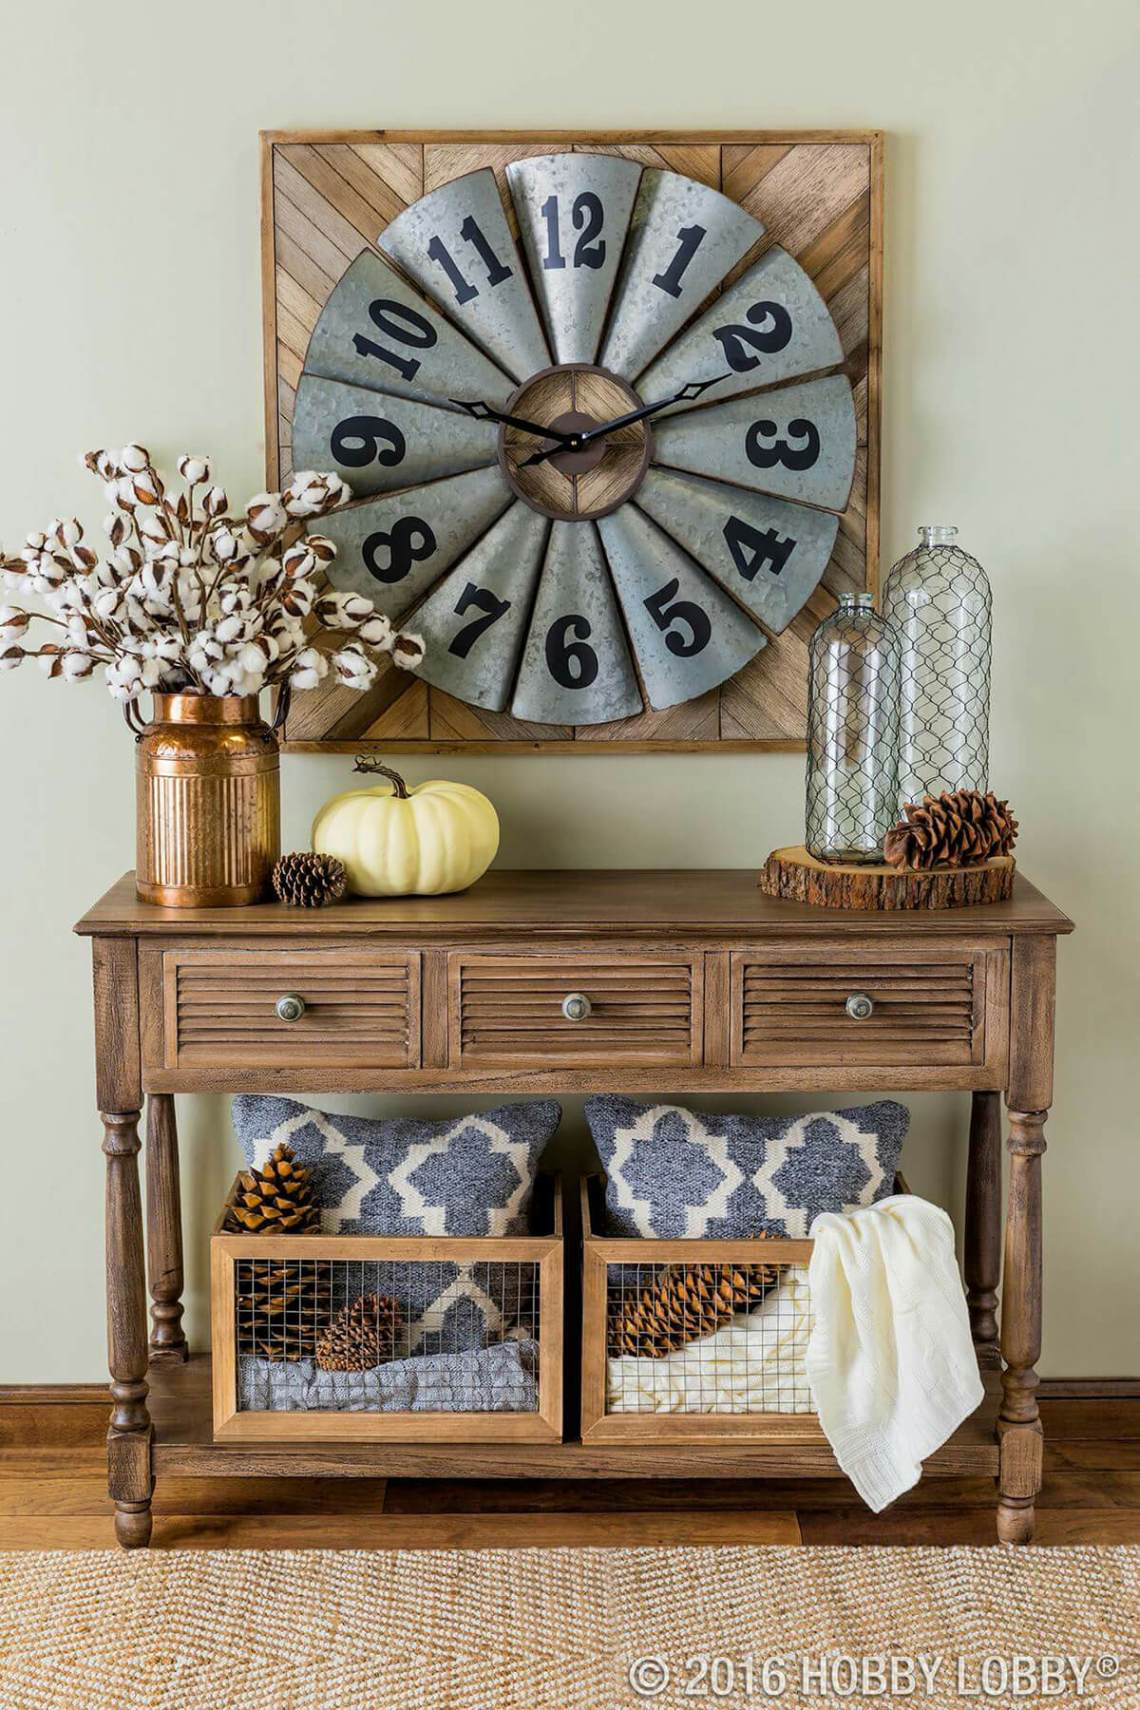 45+ Best Farmhouse Wall Decor Ideas and Designs for 2020